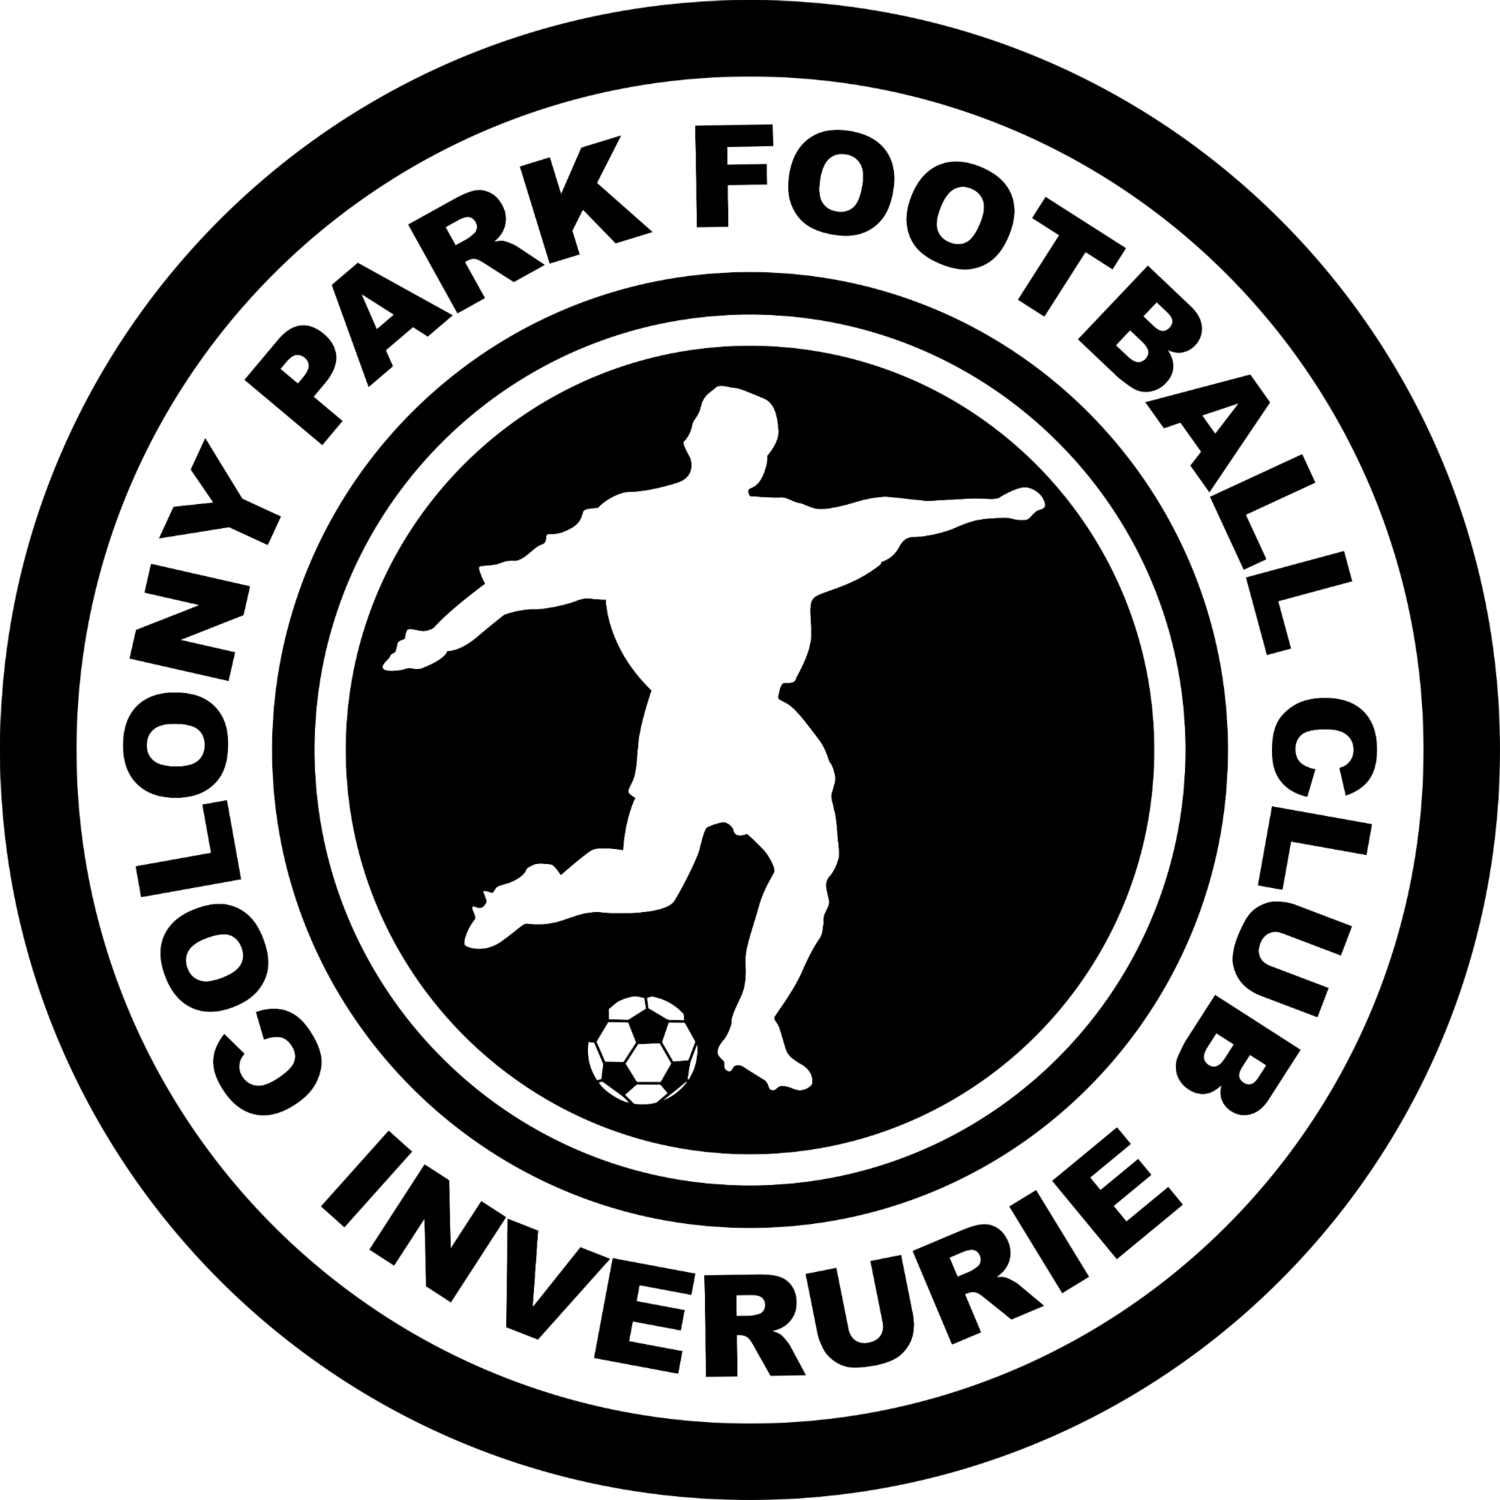 Colony Park Football Club